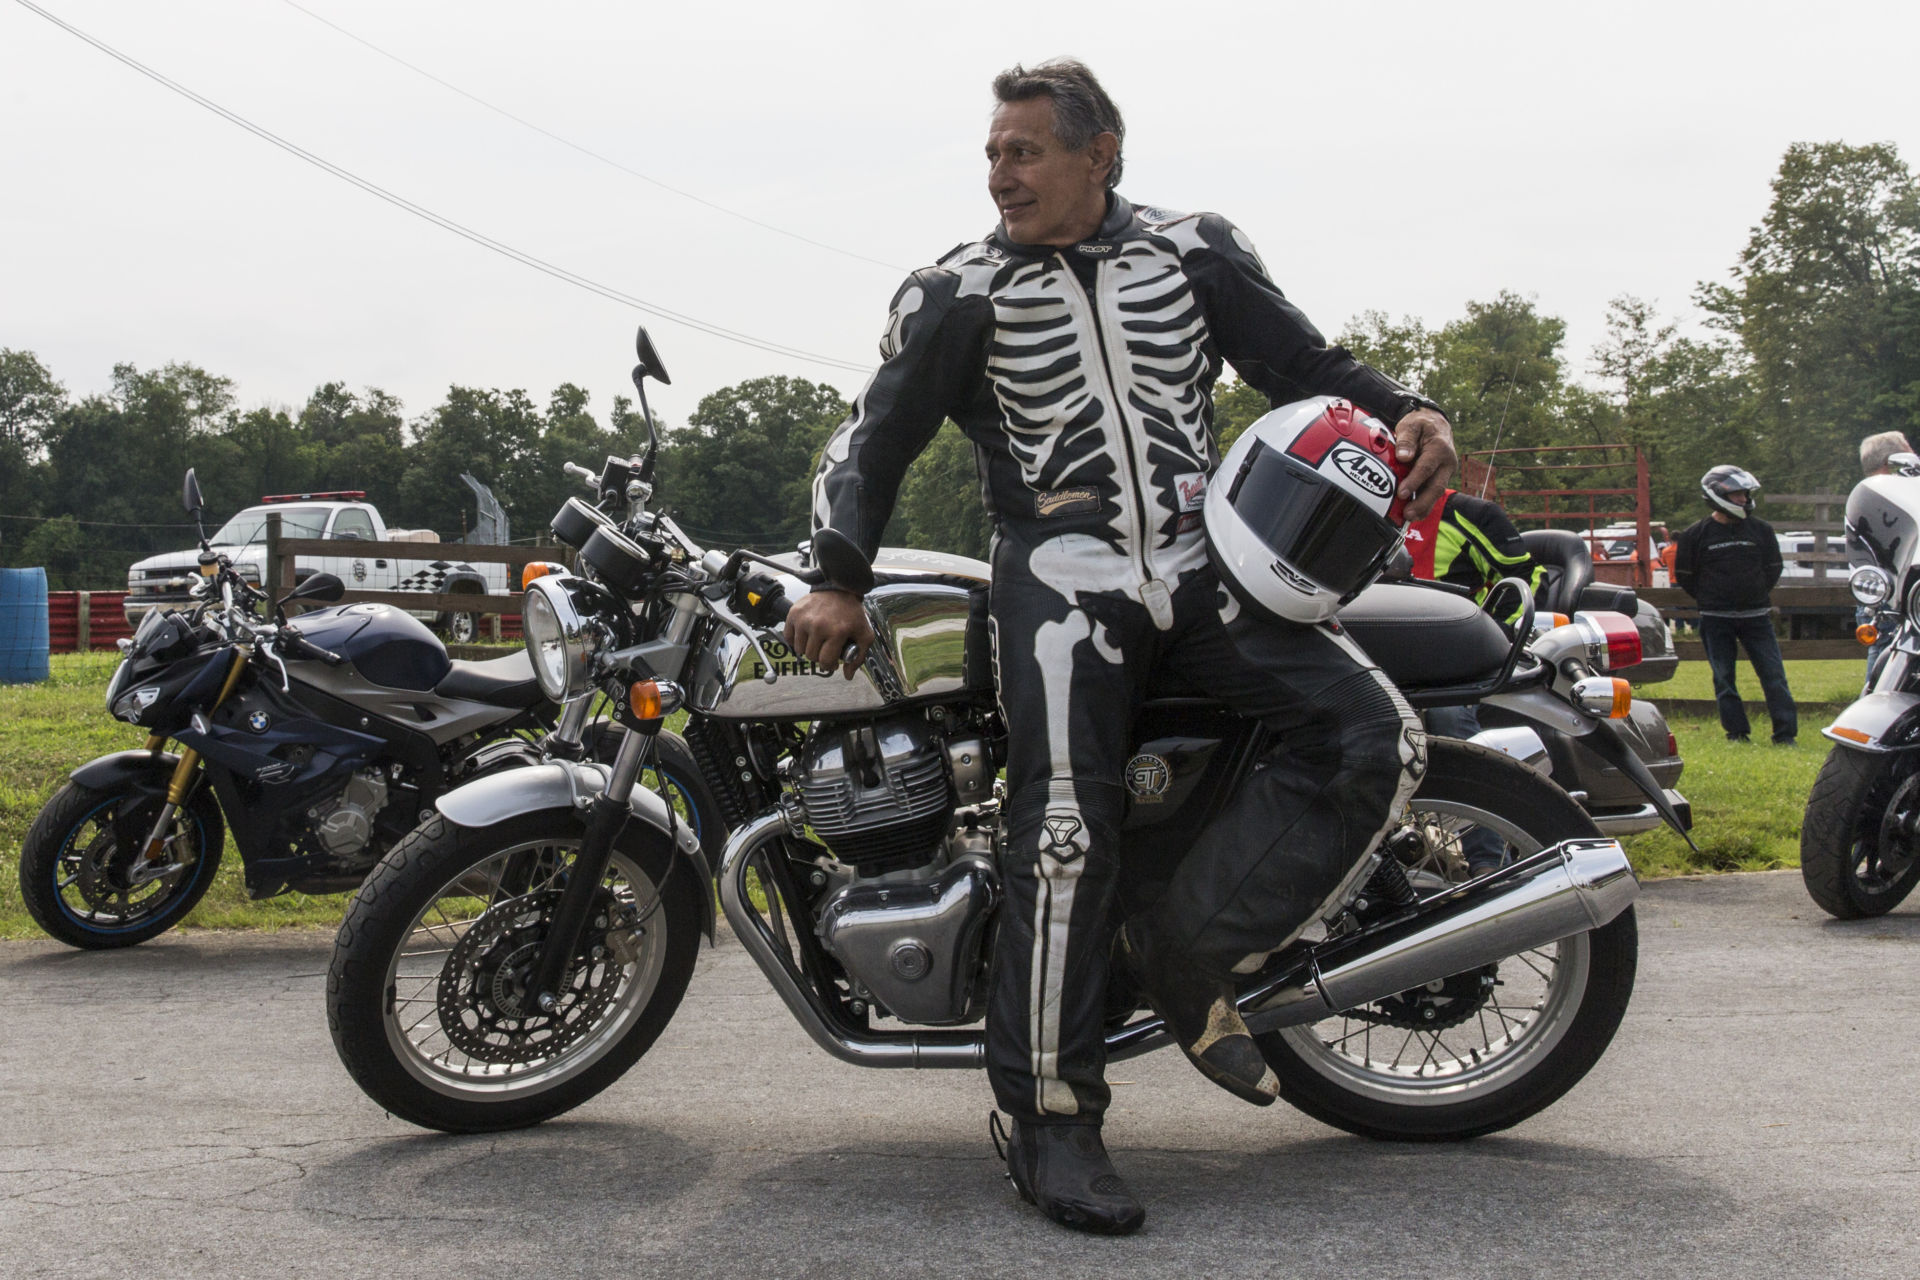 AMA Motorcycle Hall of Famer David Aldana sporting his iconic skeleton leathers prior to the Lap for History at 2021 AMA Vintage Motorcycle Days, presented by Royal Enfield. Photo by Lindsay Jordan, courtesy AMA.